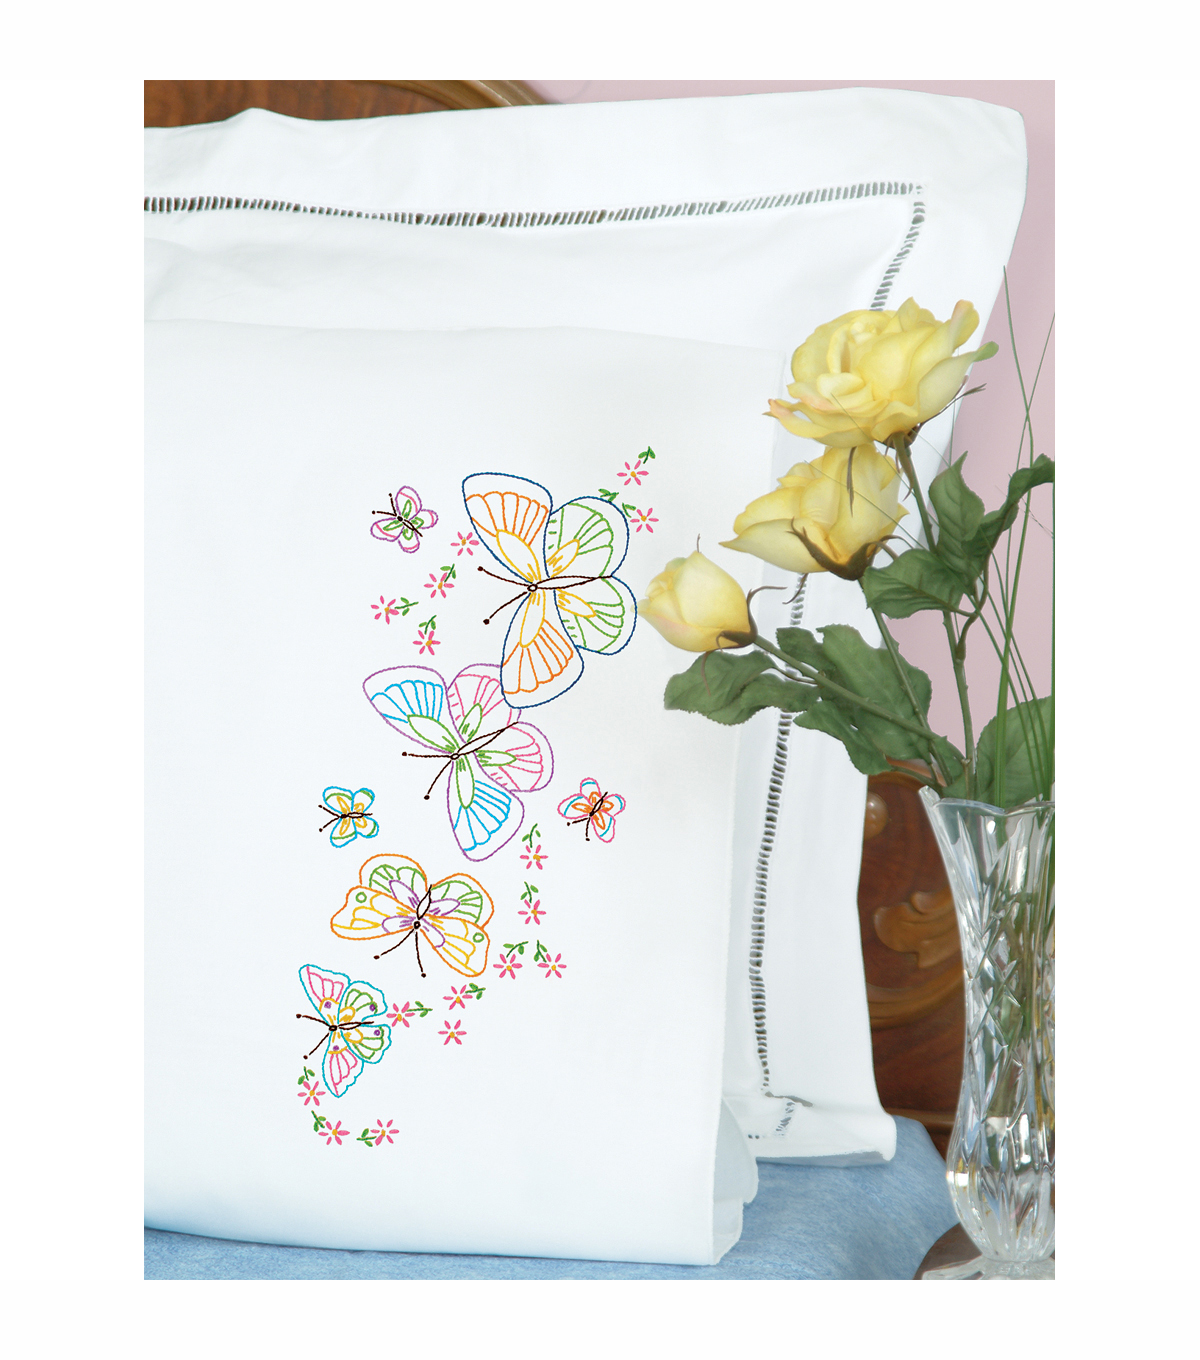 Stamped Pillowcases With White Perle Edge 2/Pkg-Fluttering Butterflies